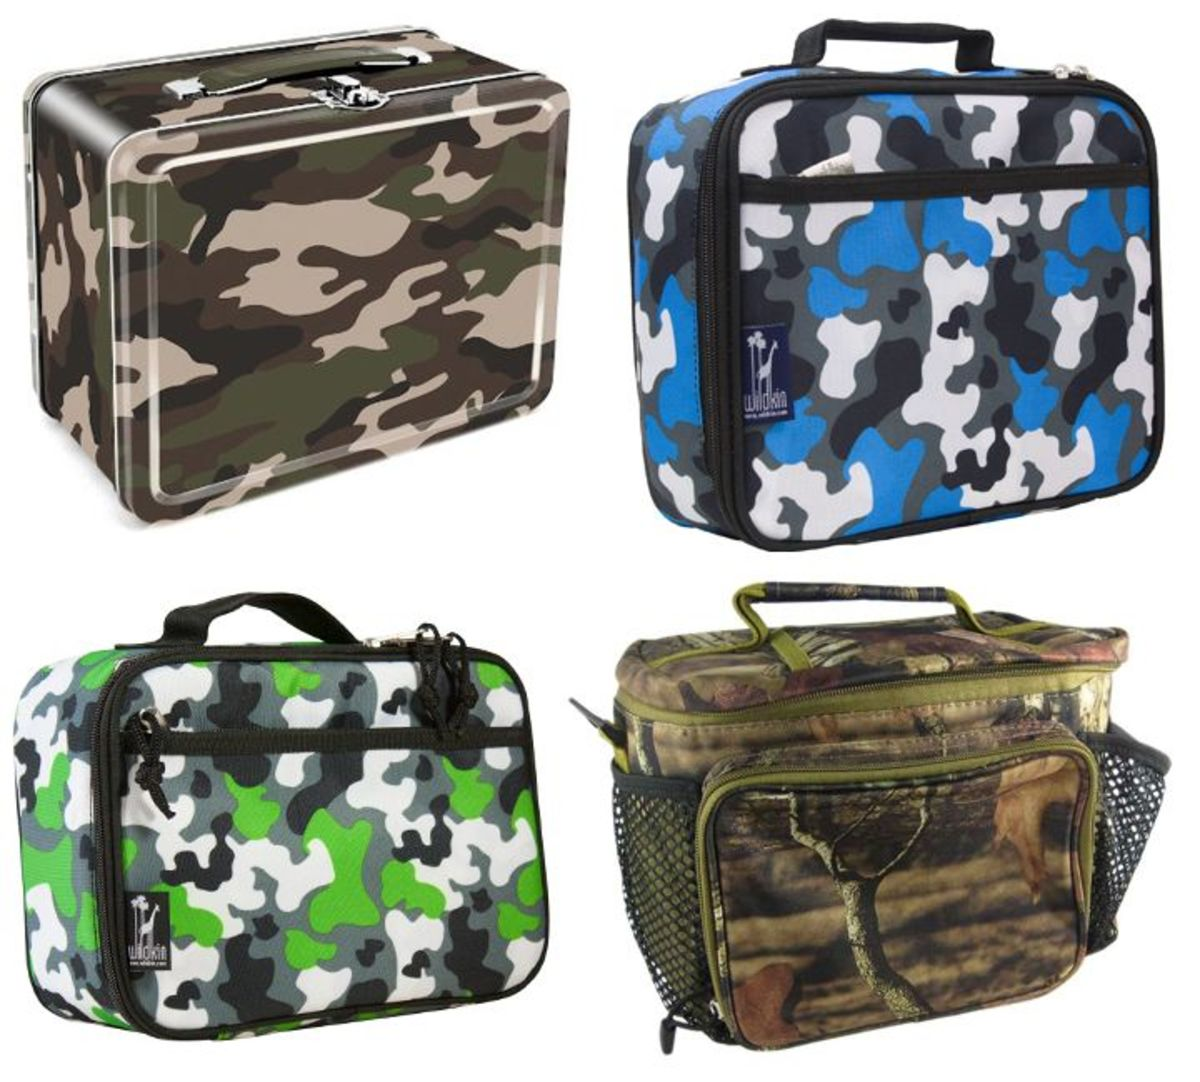 Camouflage Lunch Boxes